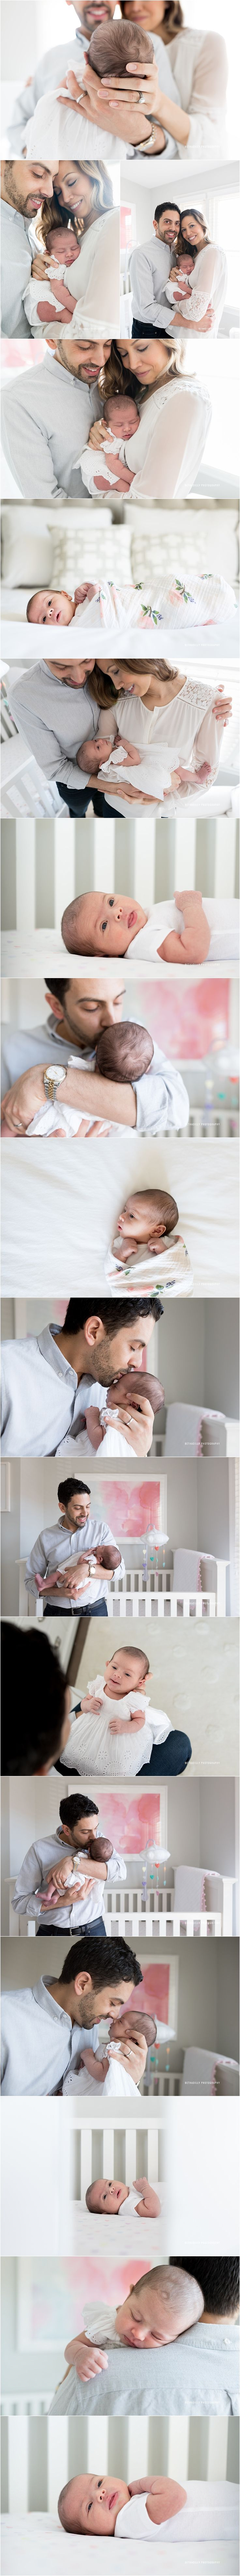 Day No. 8 | Washington DC Natural Newborn Baby Photographer | Bethadilly Photography